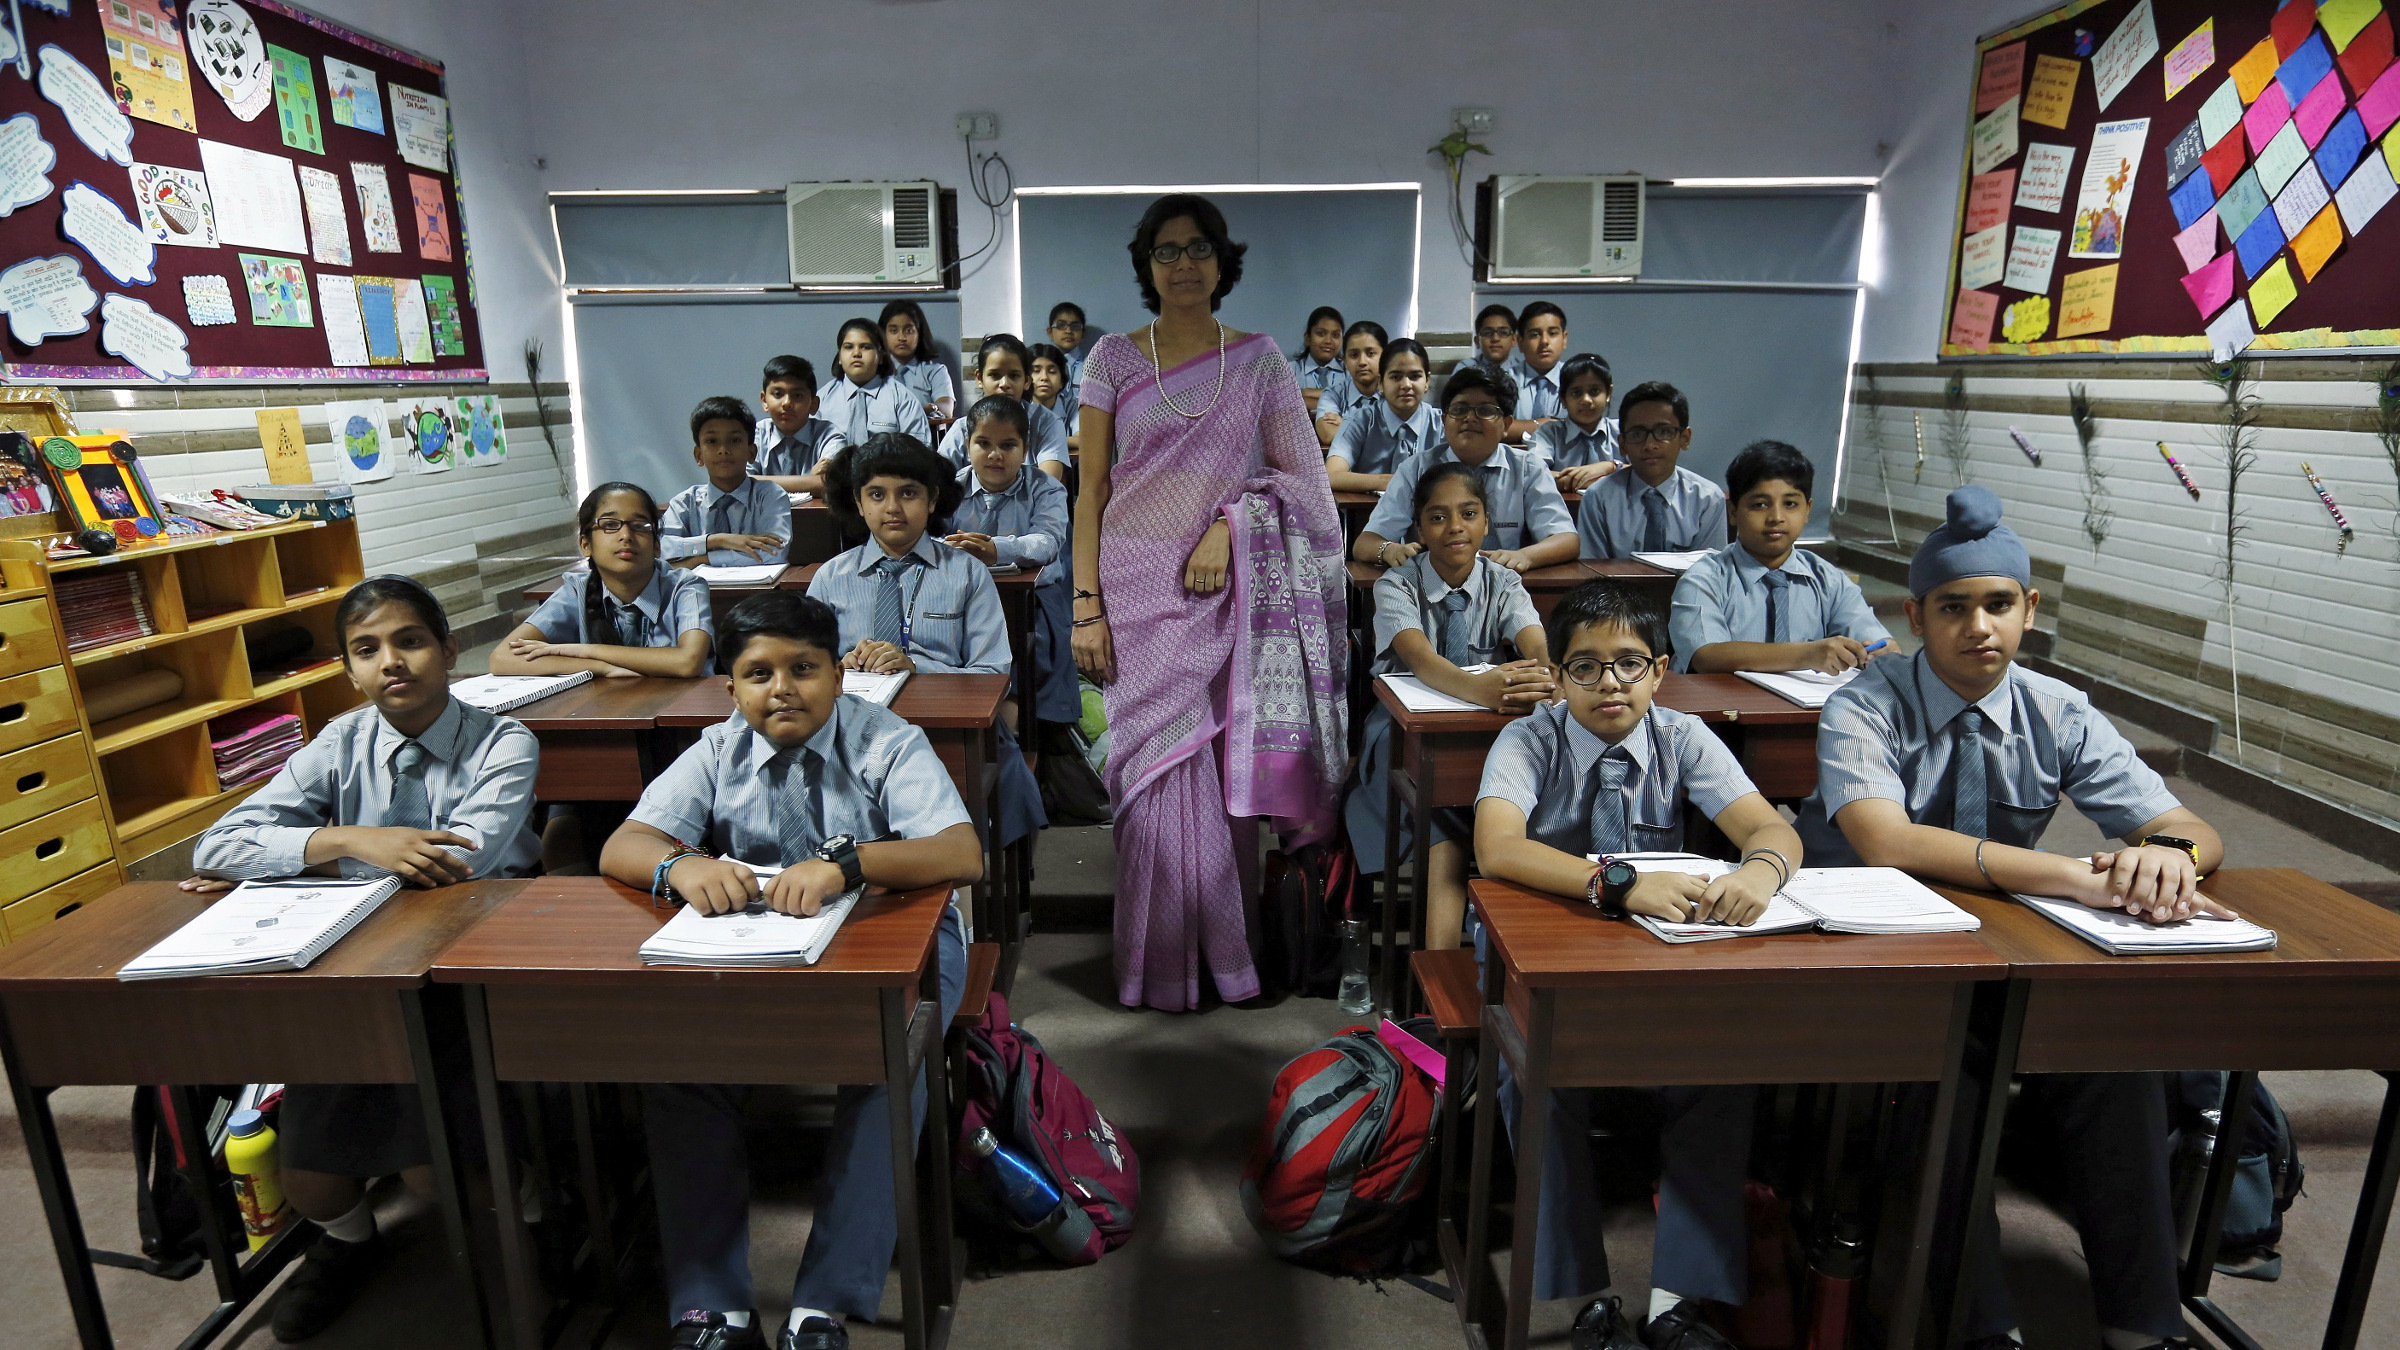 Teacher Archana Shori poses for a picture with 7th-grade level students inside their classroom at Rukmini Devi Public school in New Delhi, India, September 7, 2015. Nearly three years after Taliban gunmen shot Pakistani schoolgirl Malala Yousafzai, the teenage activist last week urged world leaders gathered in New York to help millions more children go to school. World Teachers' Day falls on 5 October, a Unesco initiative highlighting the work of educators struggling to teach children amid intimidation in Pakistan, conflict in Syria or poverty in Vietnam. Even so, there have been some improvements: the number of children not attending primary school has plummeted to an estimated 57 million worldwide in 2015, the U.N. says, down from 100 million 15 years ago. Reuters photographers have documented learning around the world, from well-resourced schools to pupils crammed into corridors in the Philippines, on boats in Brazil or in crowded classrooms in Burundi.